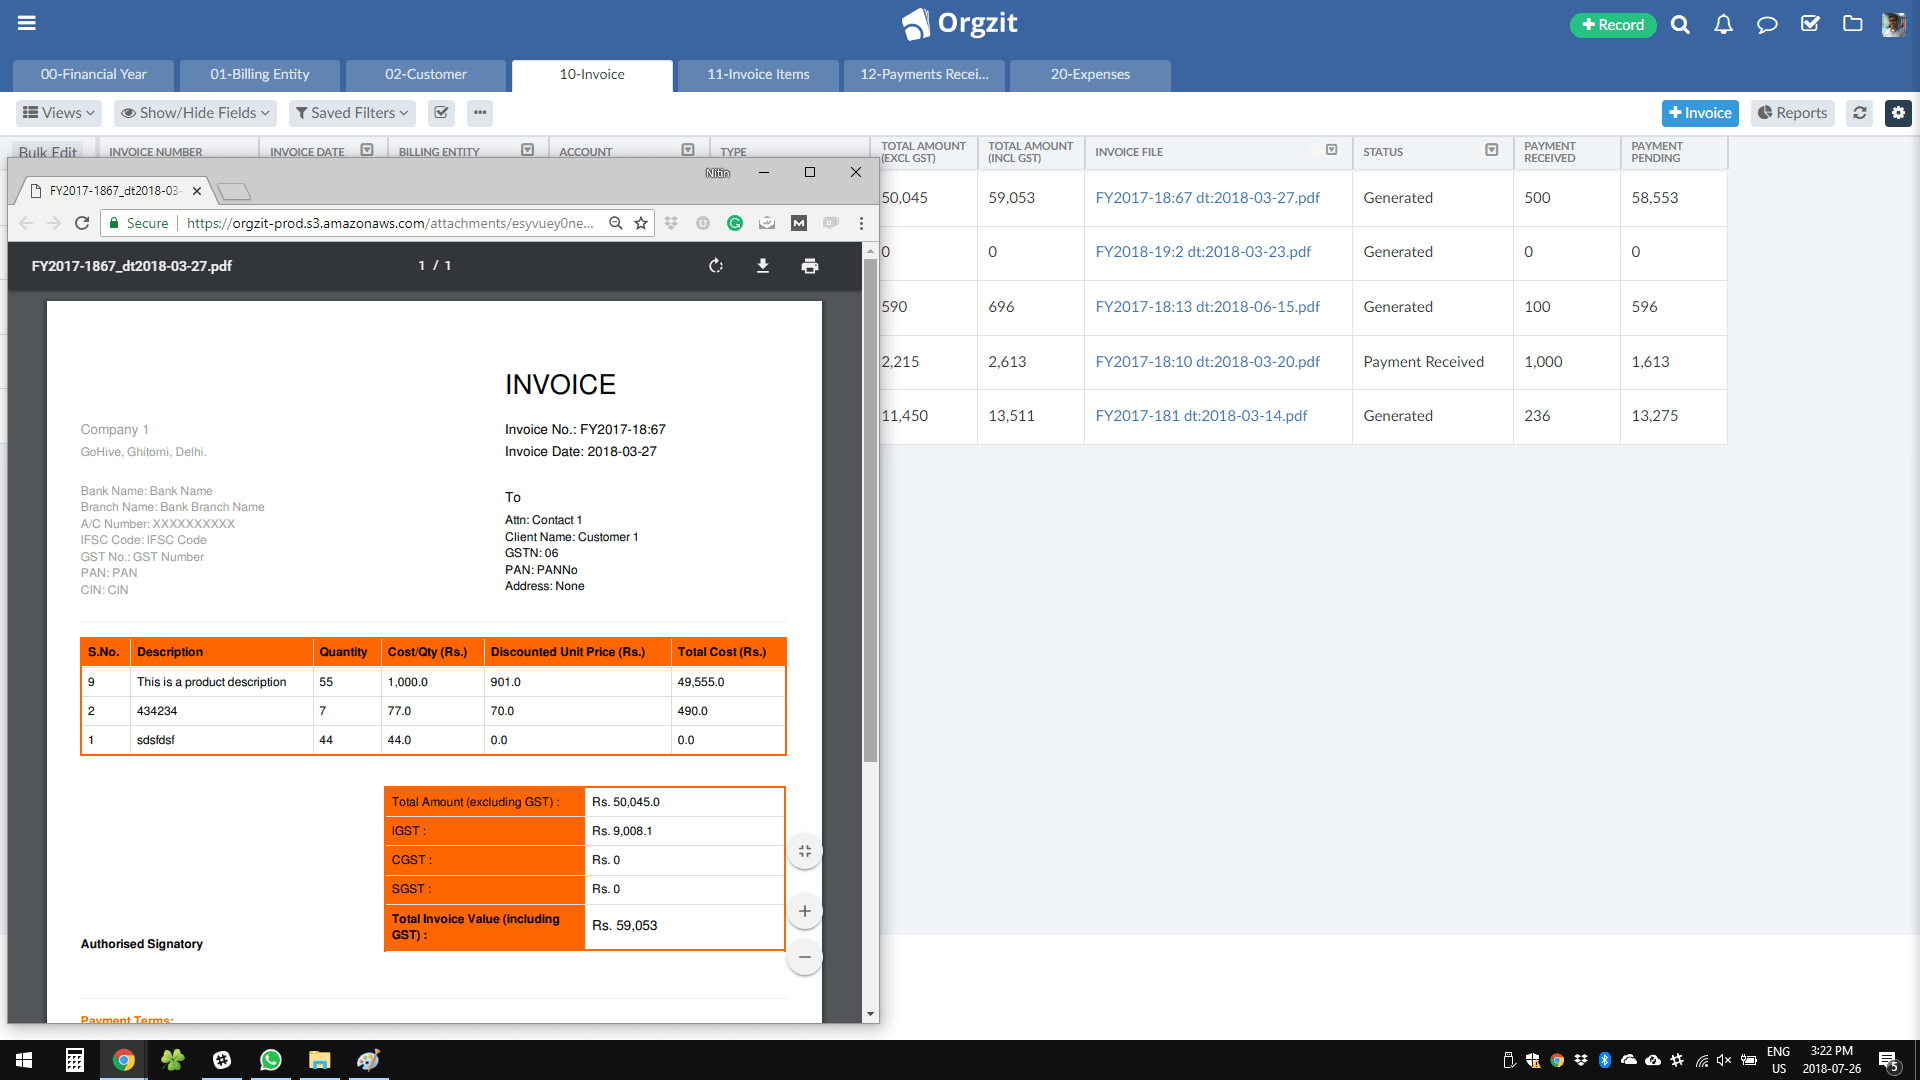 Orgzit Automate Document